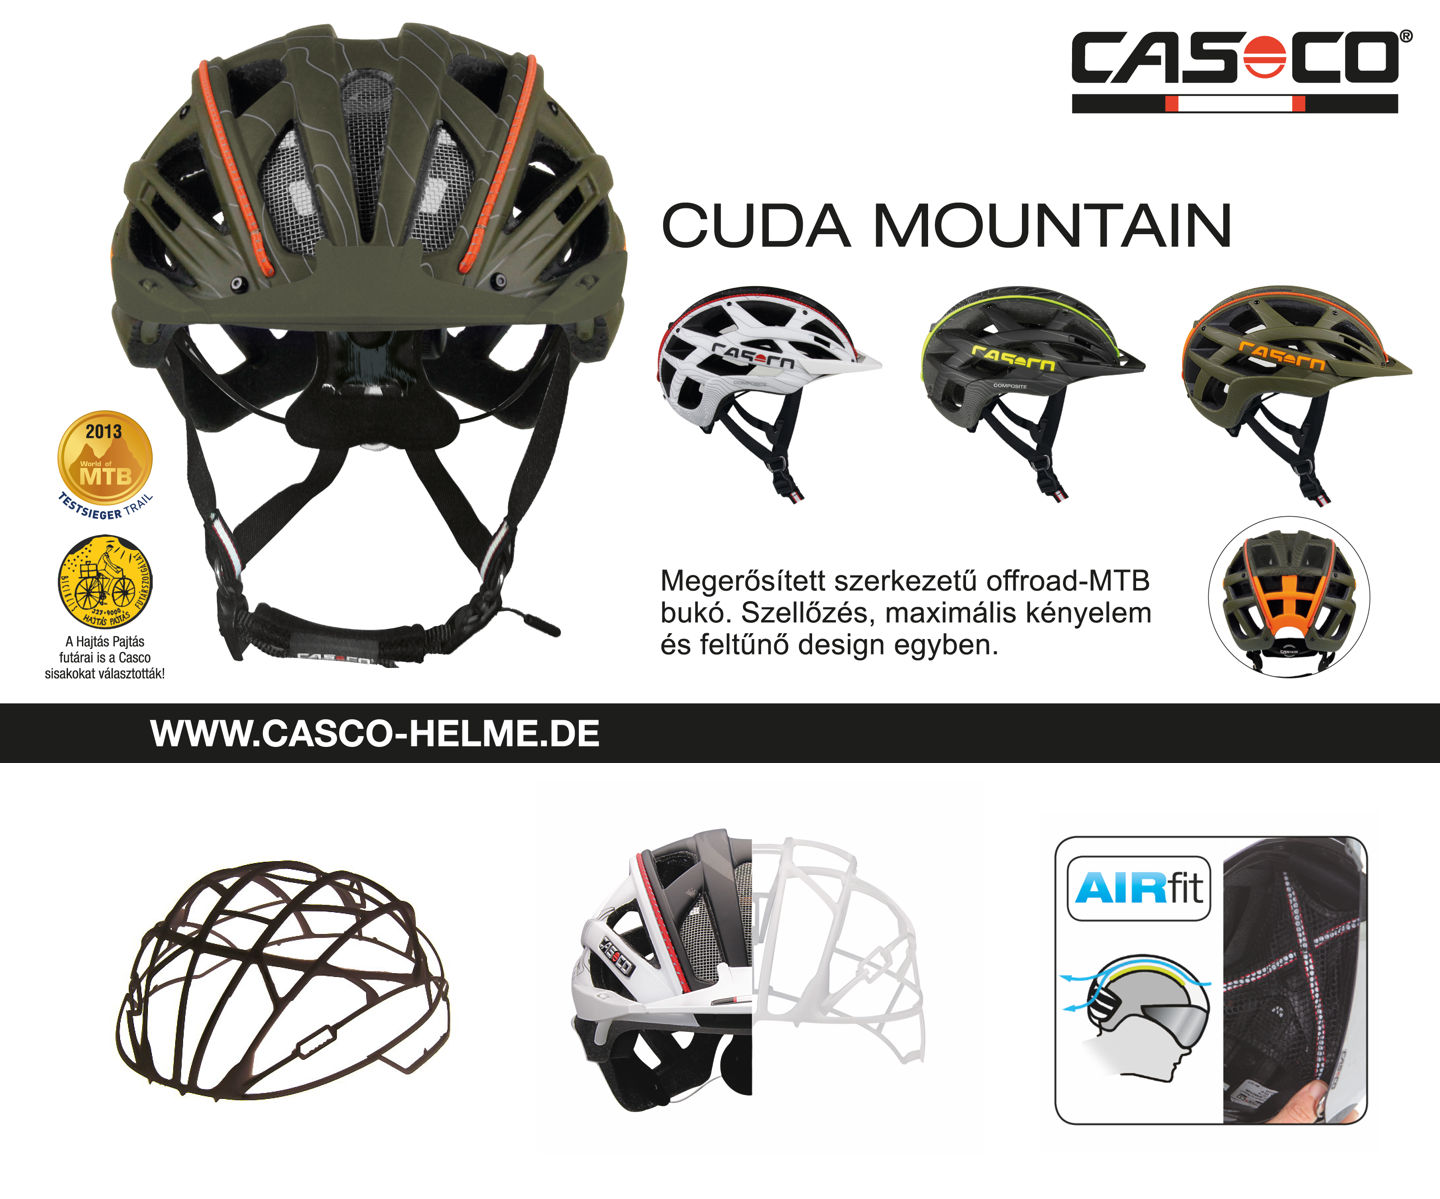 Casco Cuda Mountain Forrás: Casco